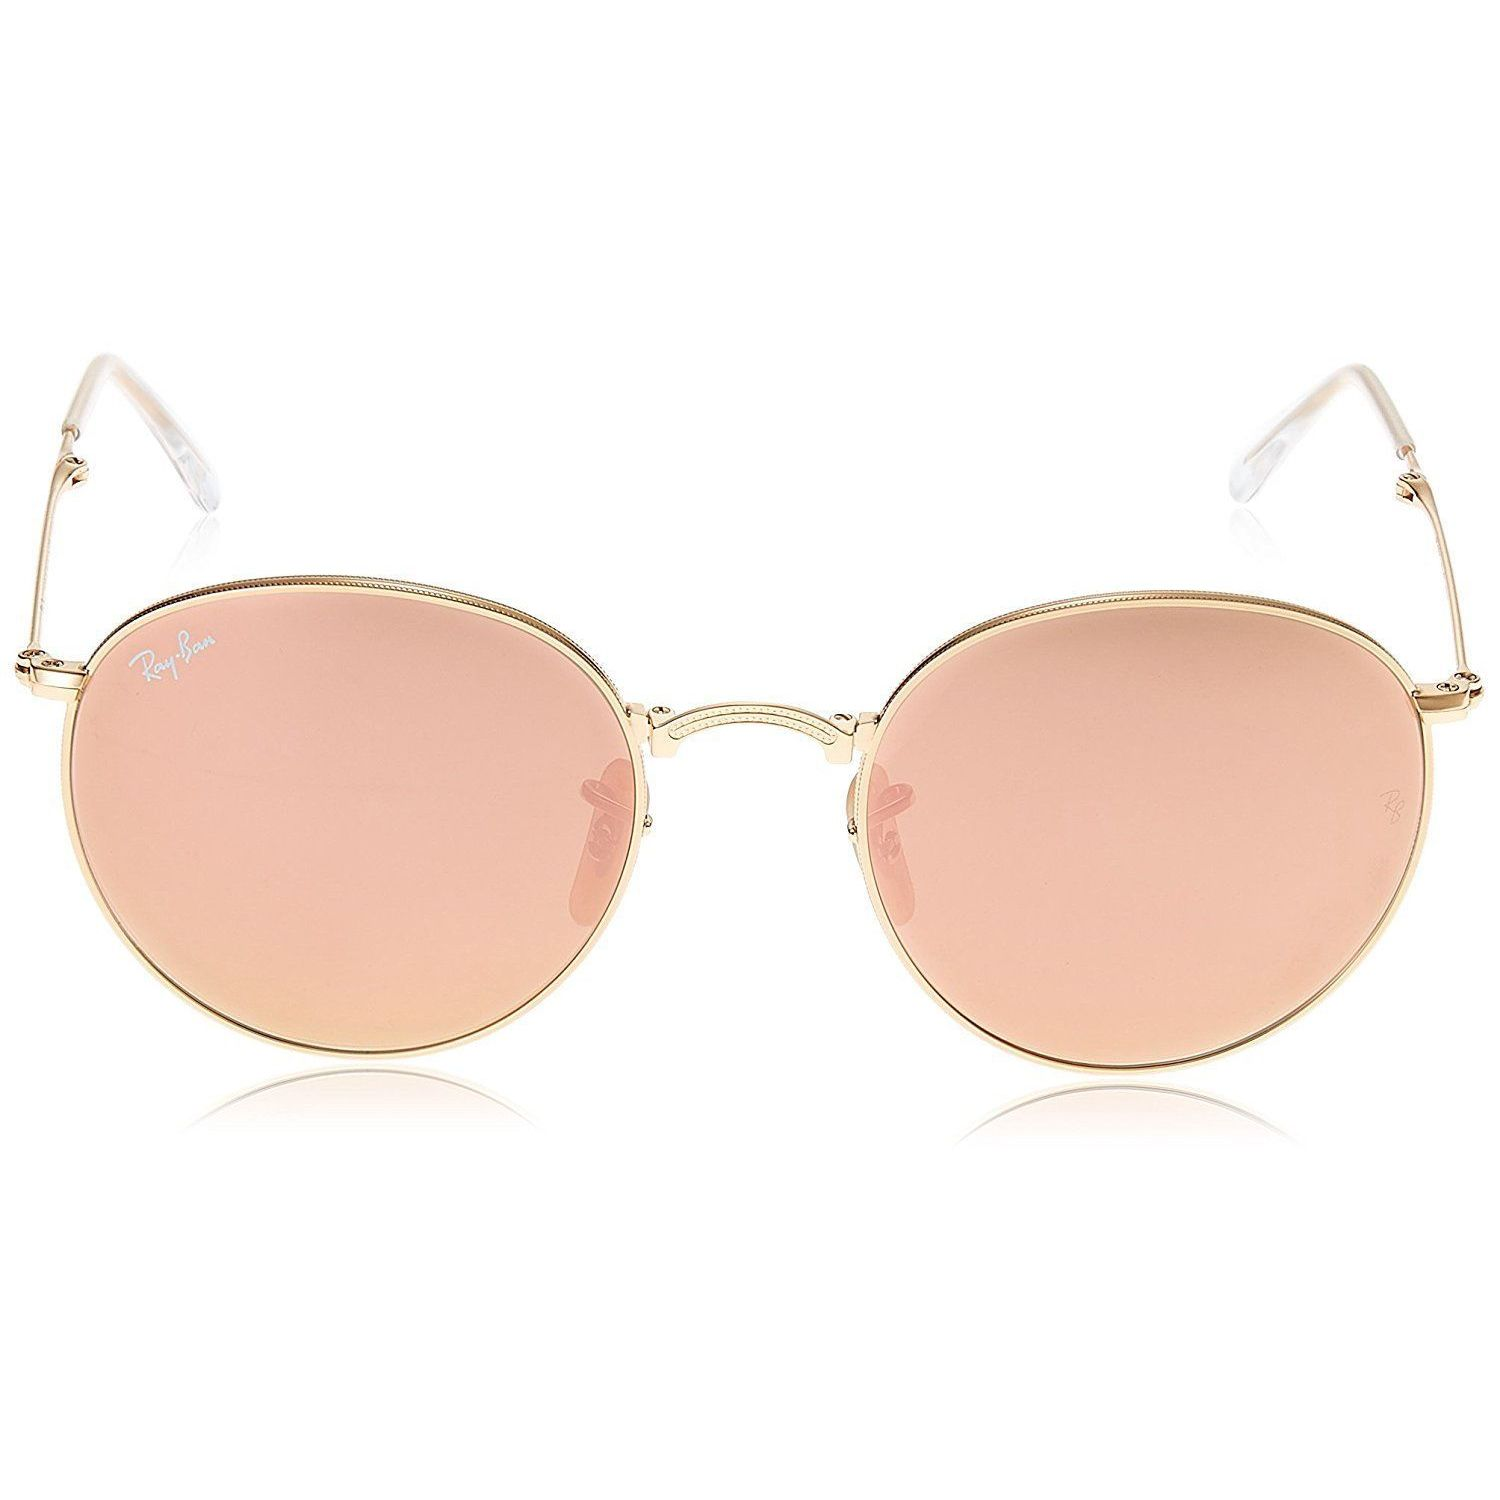 a406692325589 ... sunglass rb3447 3fae7 cbf68  coupon code shop ray ban rb3532 001 z2  round metal folding gold frame copper flash 50mm